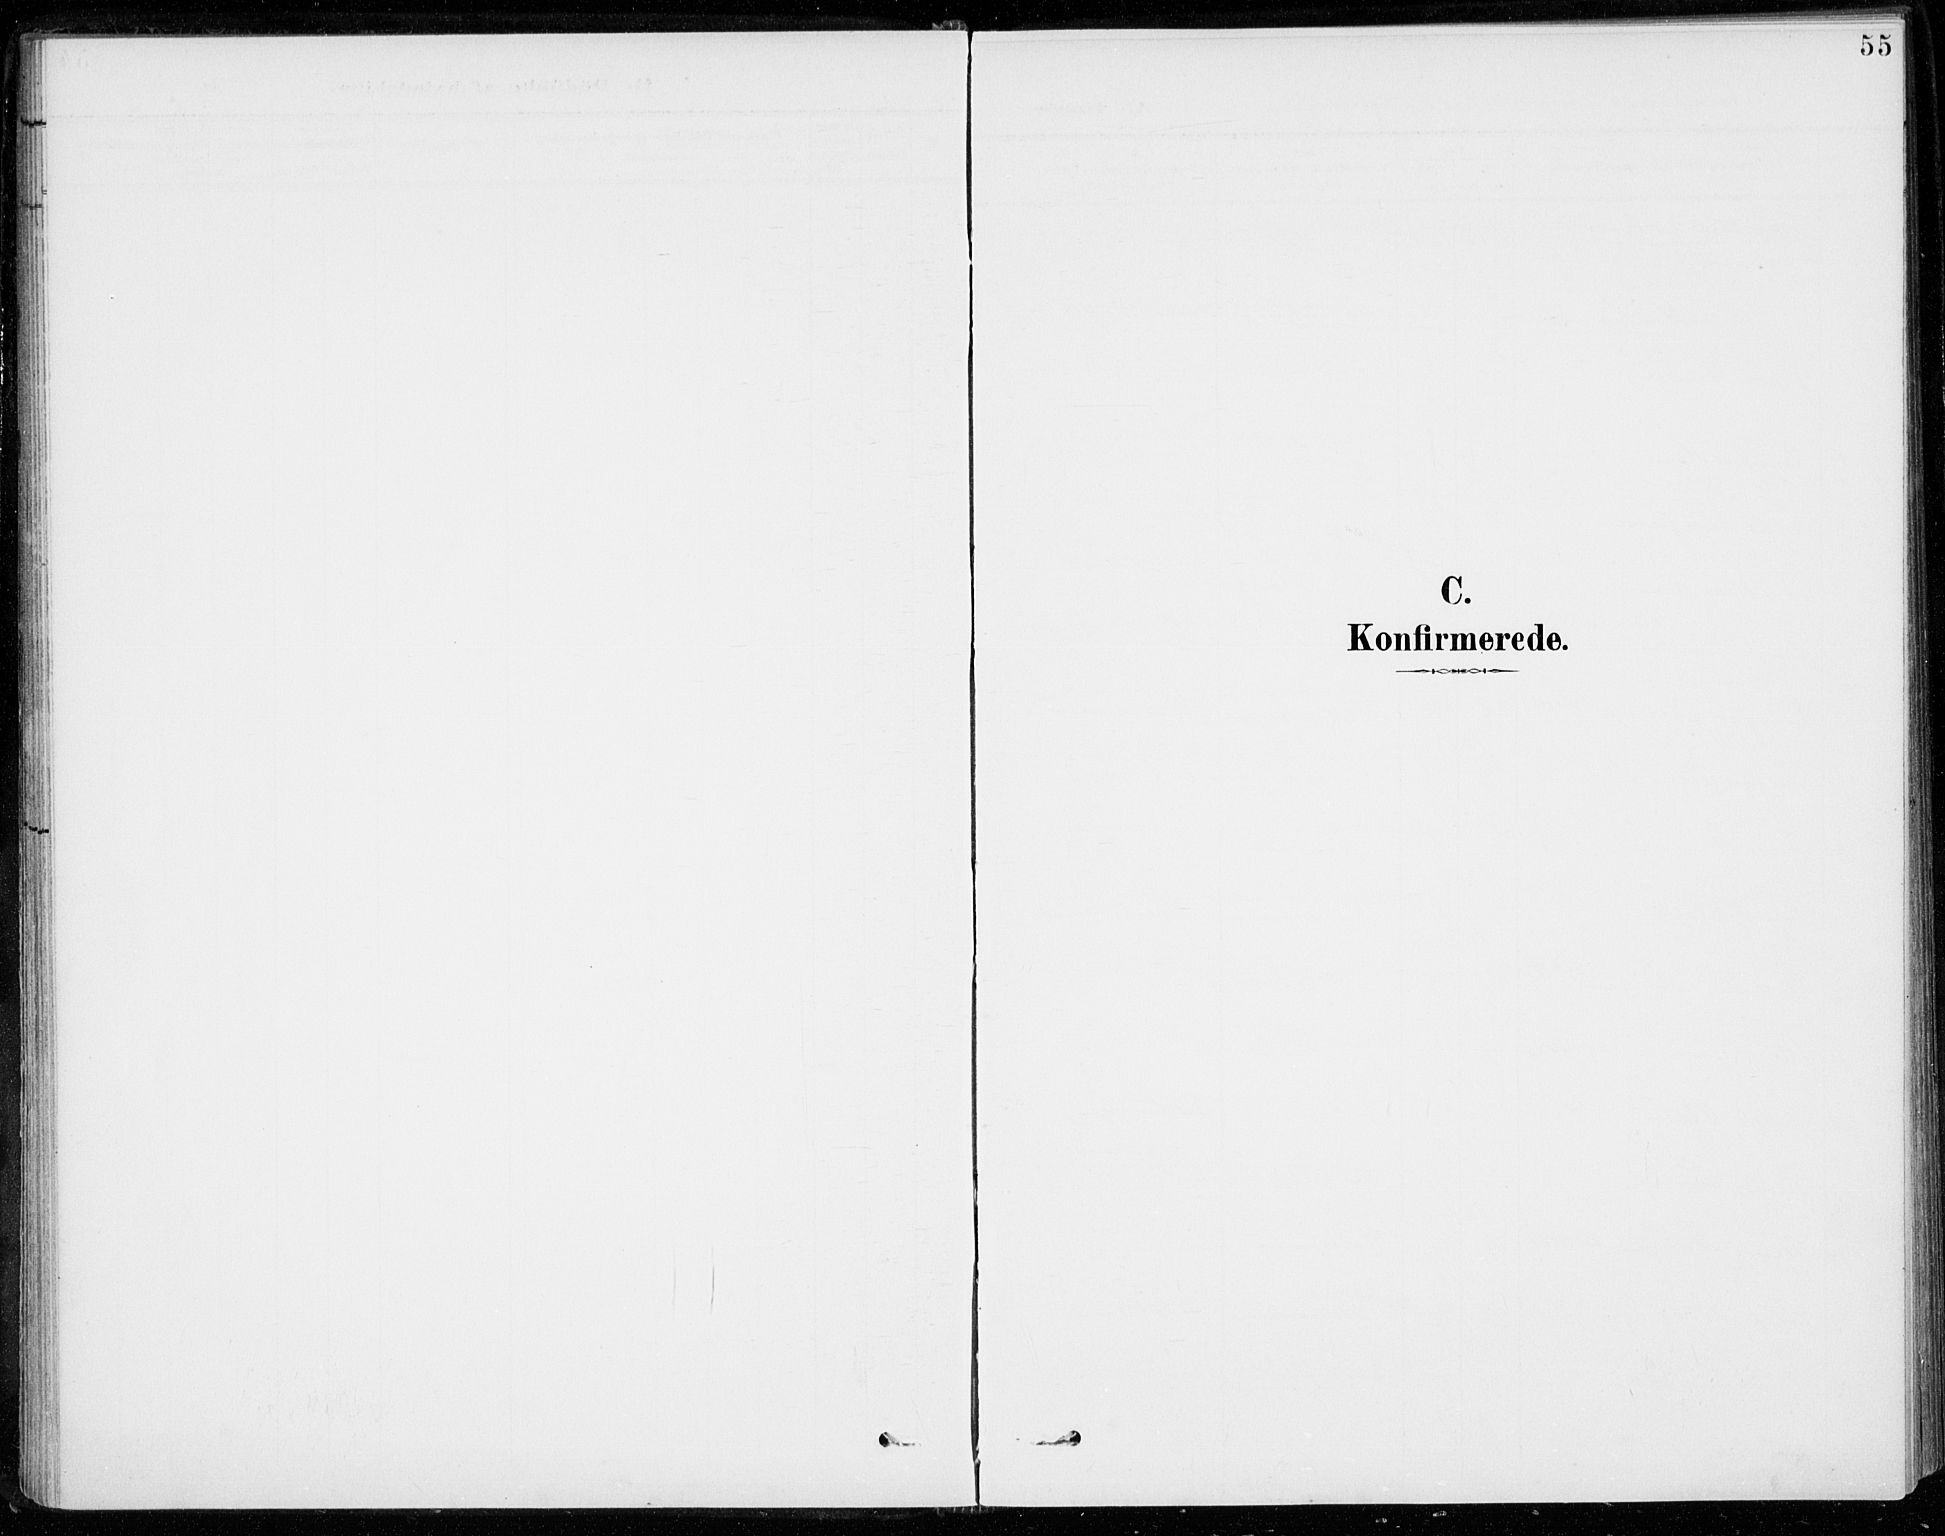 SAKO, Sigdal kirkebøker, F/Fc/L0002: Parish register (official) no. III 2, 1894-1911, p. 55